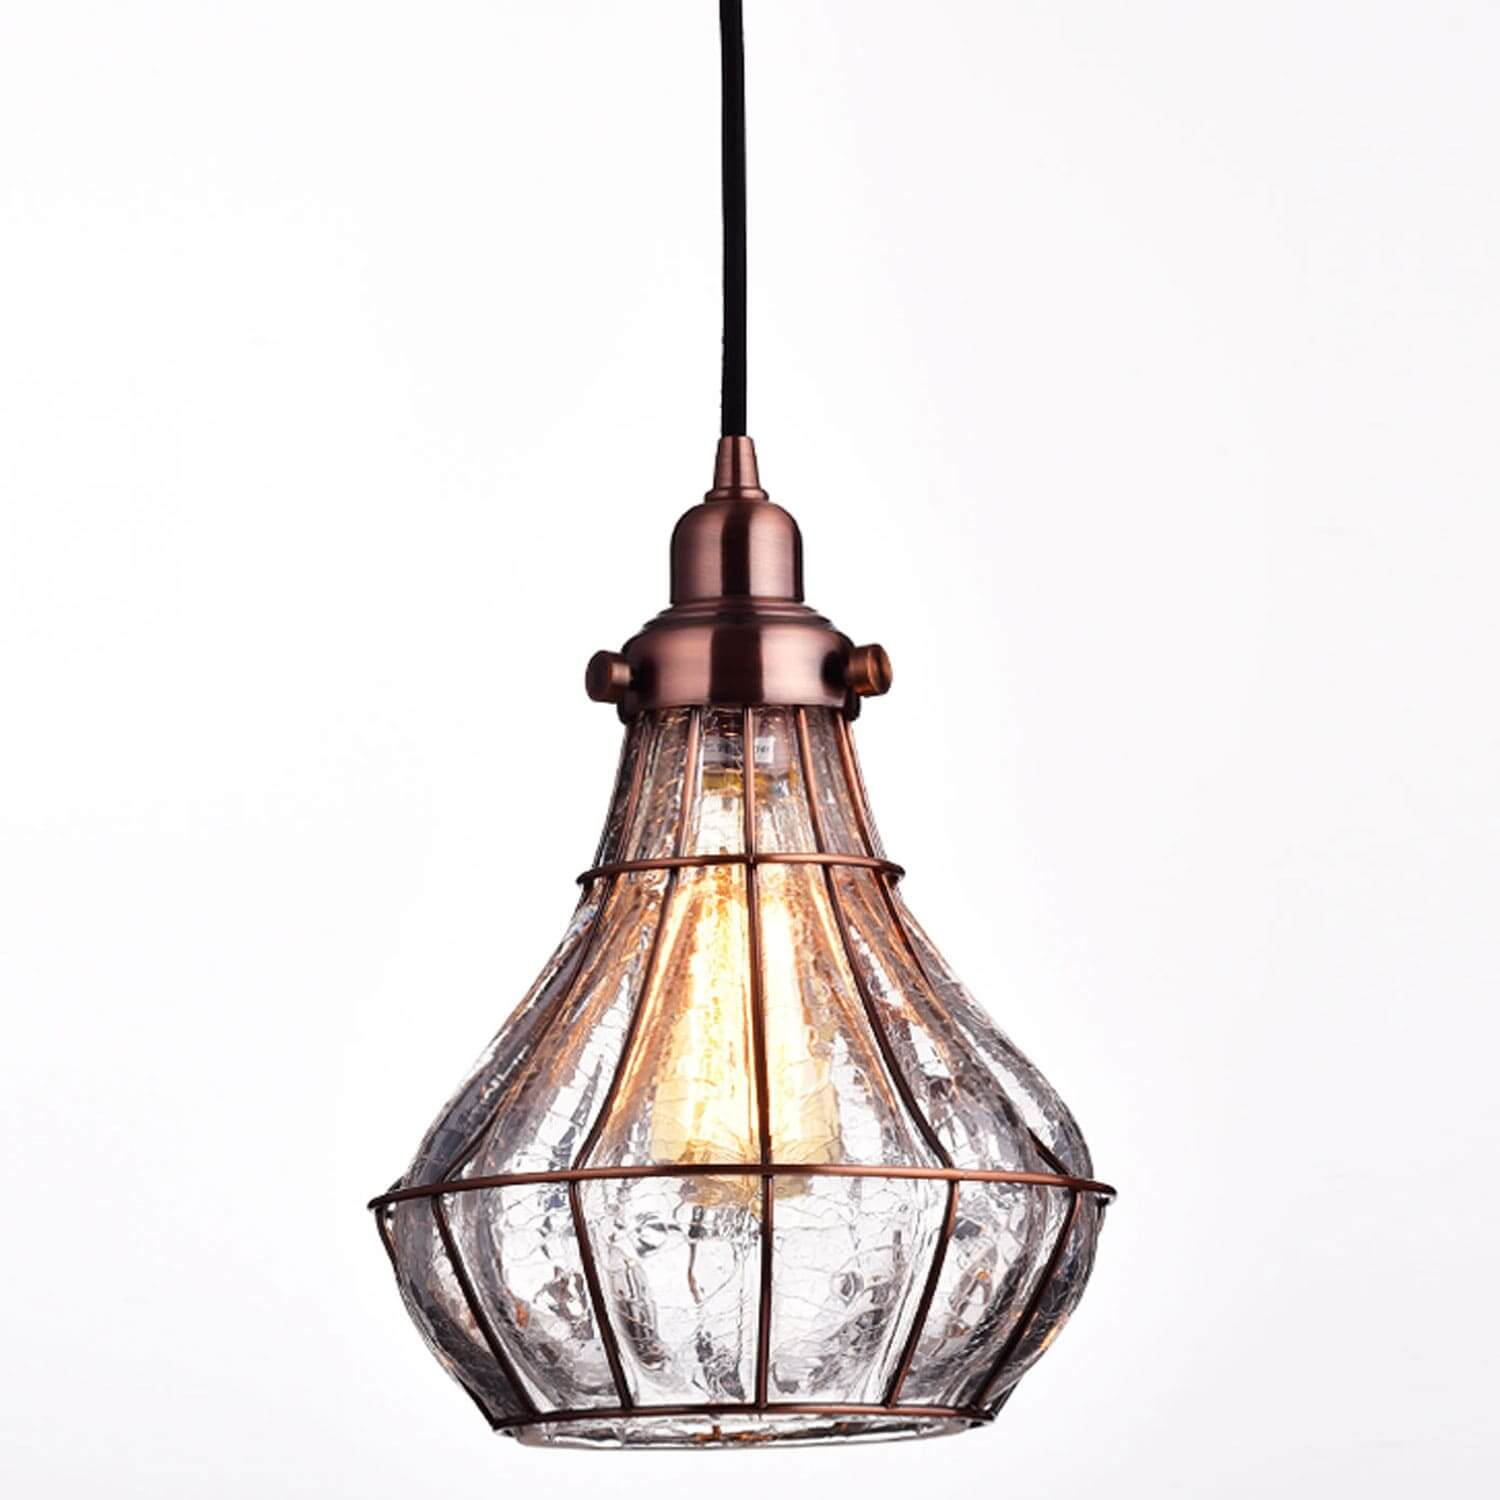 Rustic Cracked Glass Pendant Light Antique Red Copper Finish